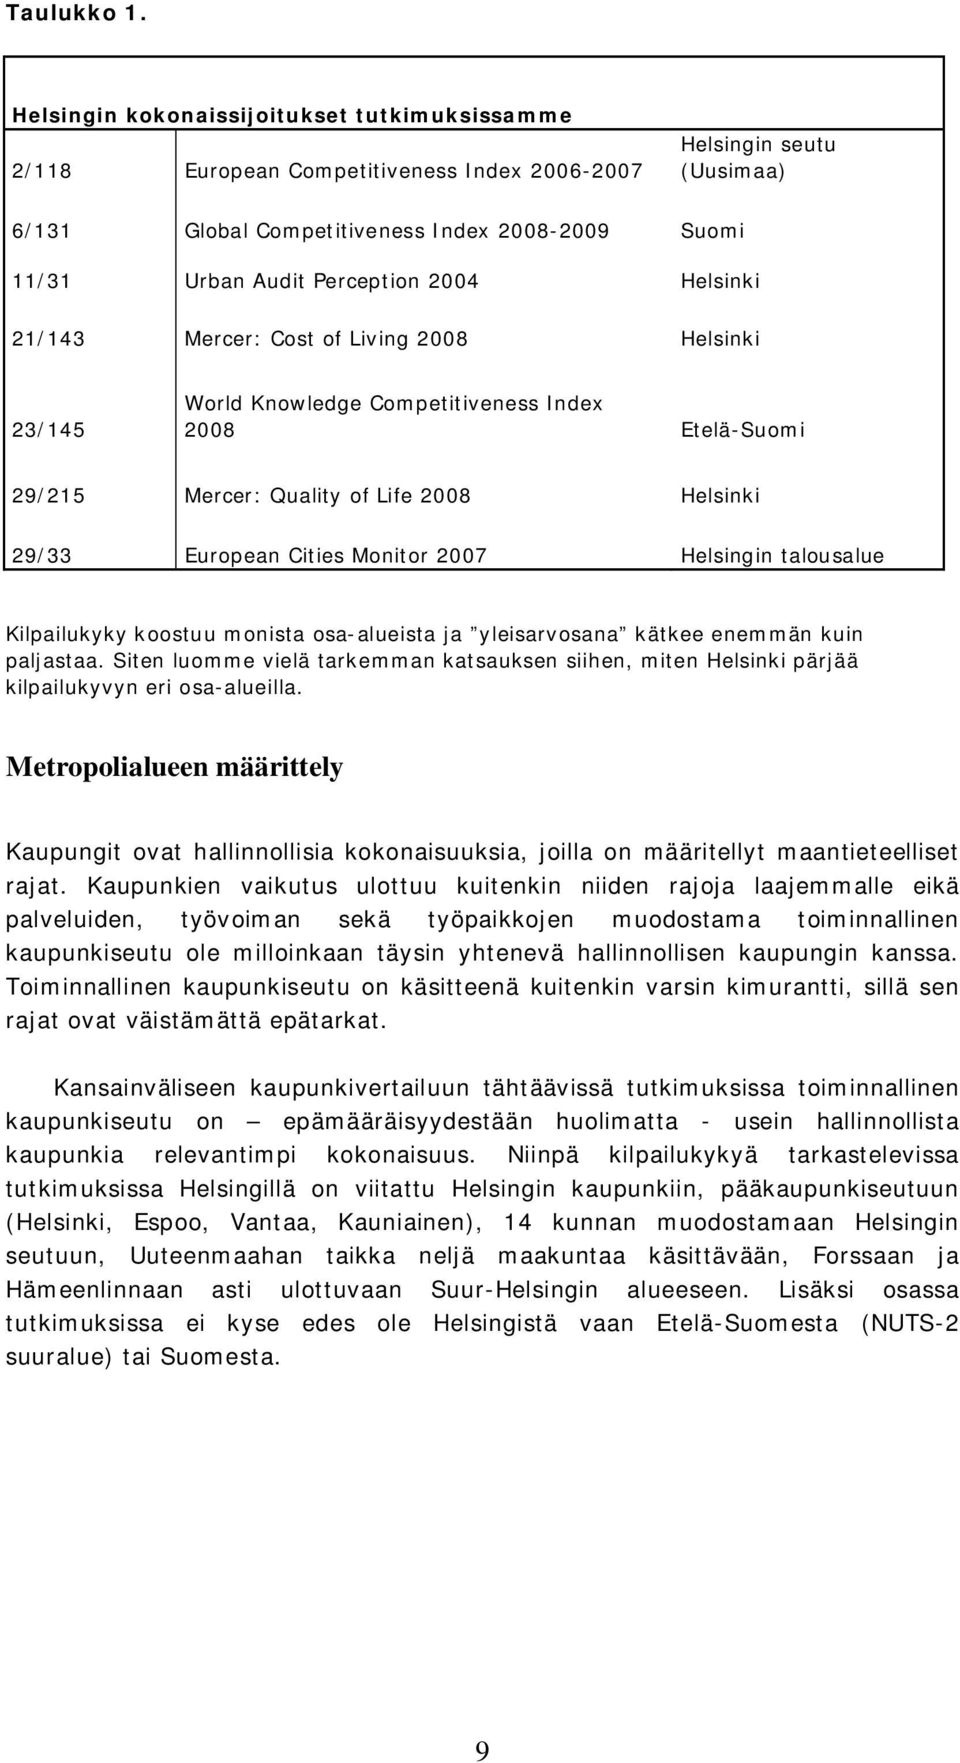 2004 Helsinki 21/143 Mercer: Cost of Living 2008 Helsinki 23/145 World Knowledge Competitiveness Index 2008 Etelä-Suomi 29/215 Mercer: Quality of Life 2008 Helsinki 29/33 European Cities Monitor 2007